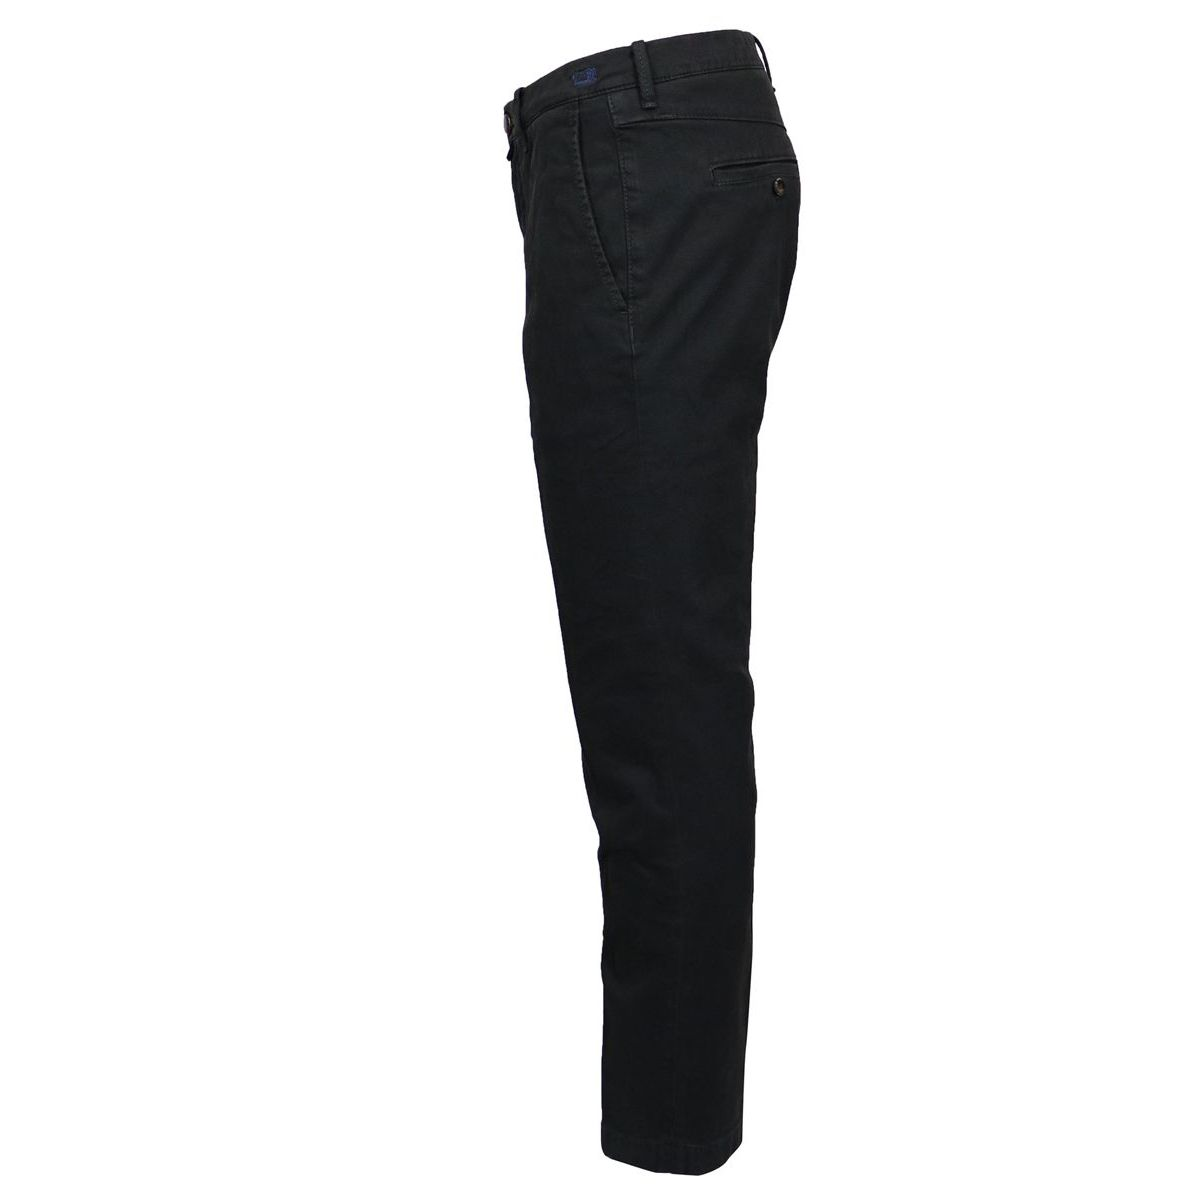 America pocket trousers with LION COMF micro-patterns Anthracite Jacob Cohen